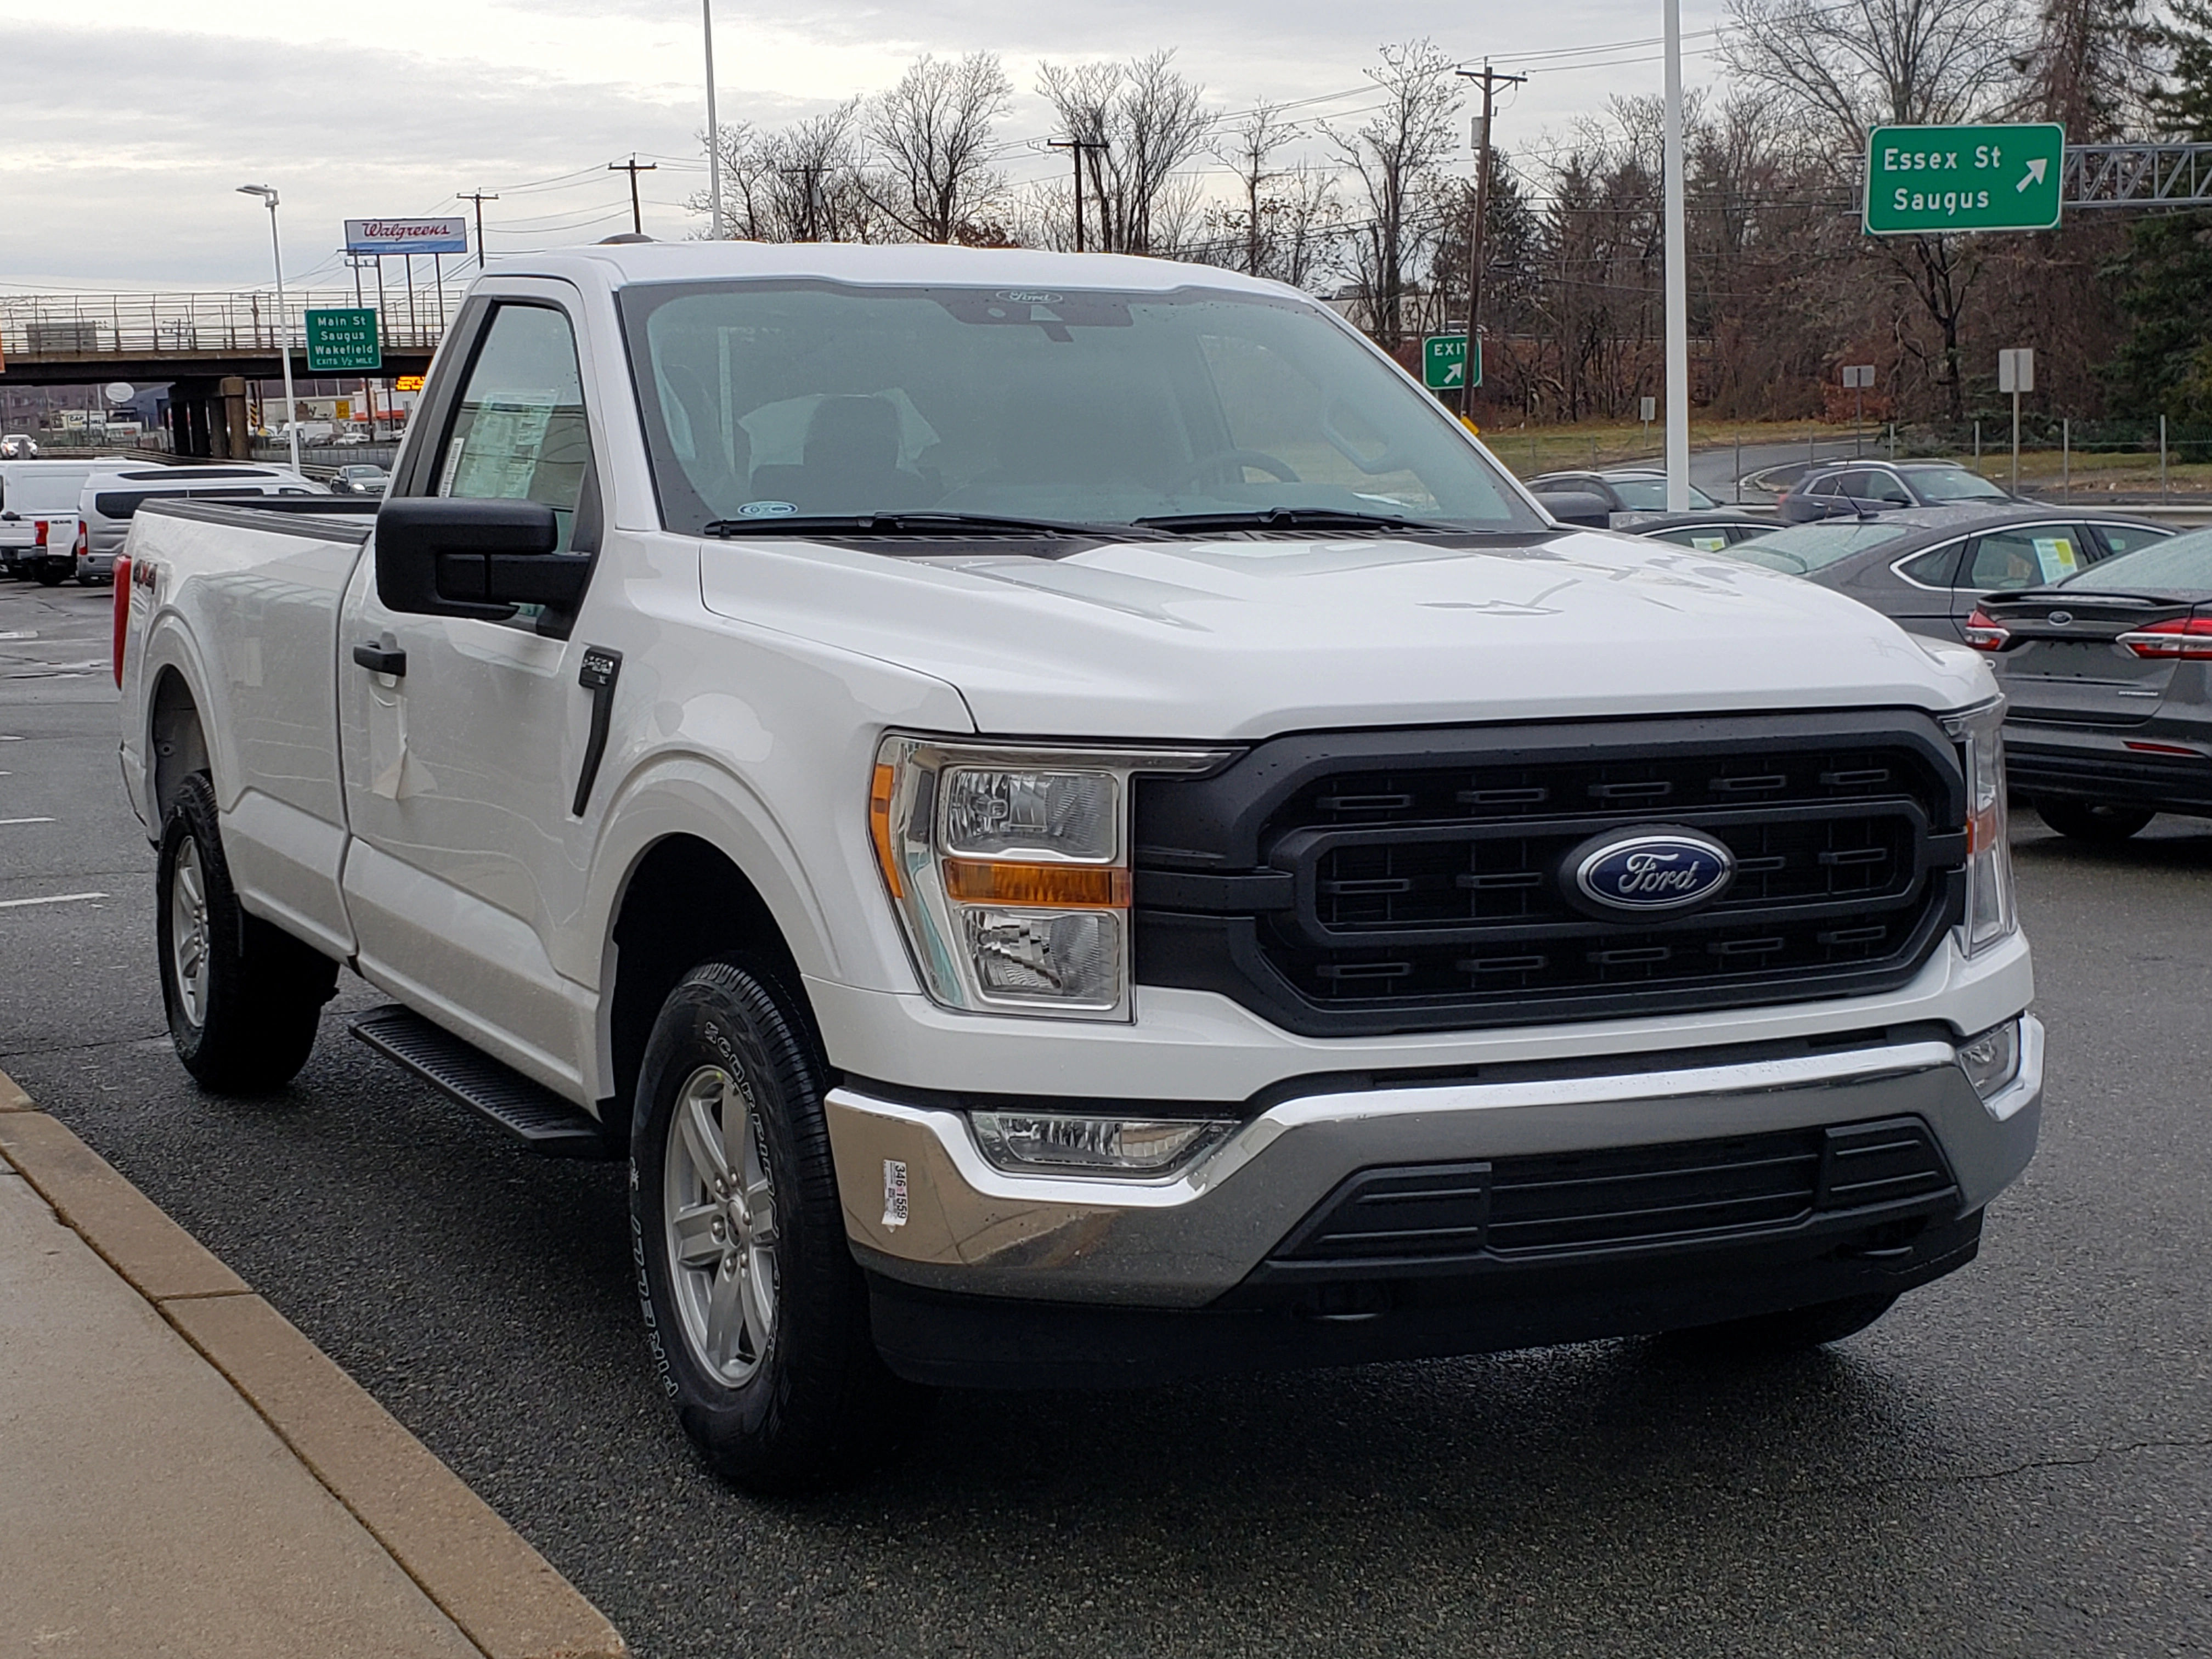 2022 Ford F-150 Regular Cab Front View